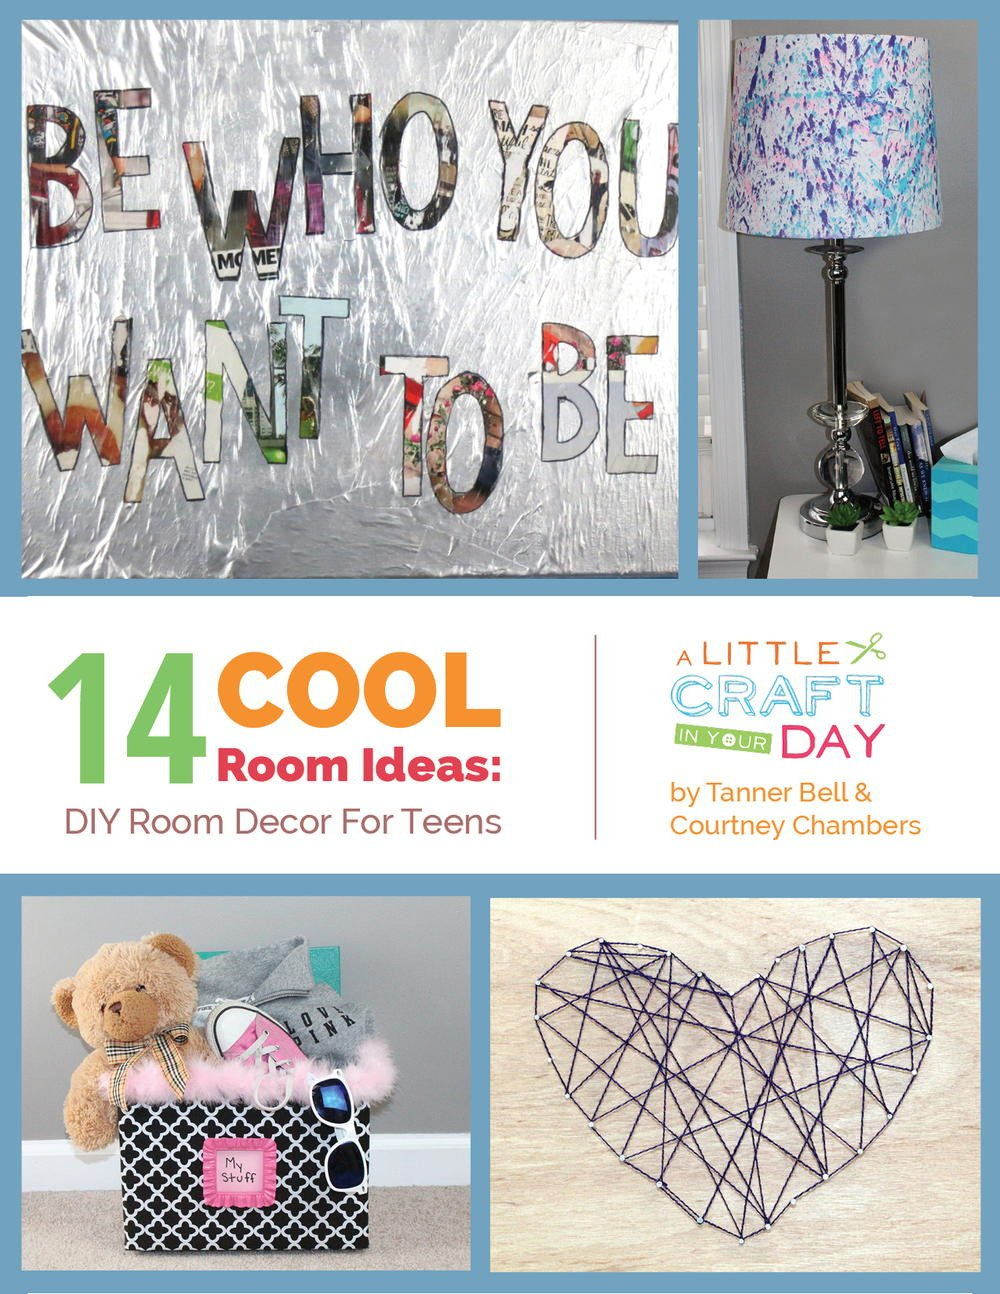 Diy Room Decor for Kids Inspirational 14 Cool Room Ideas Diy Room Decor for Teens Free Ebook